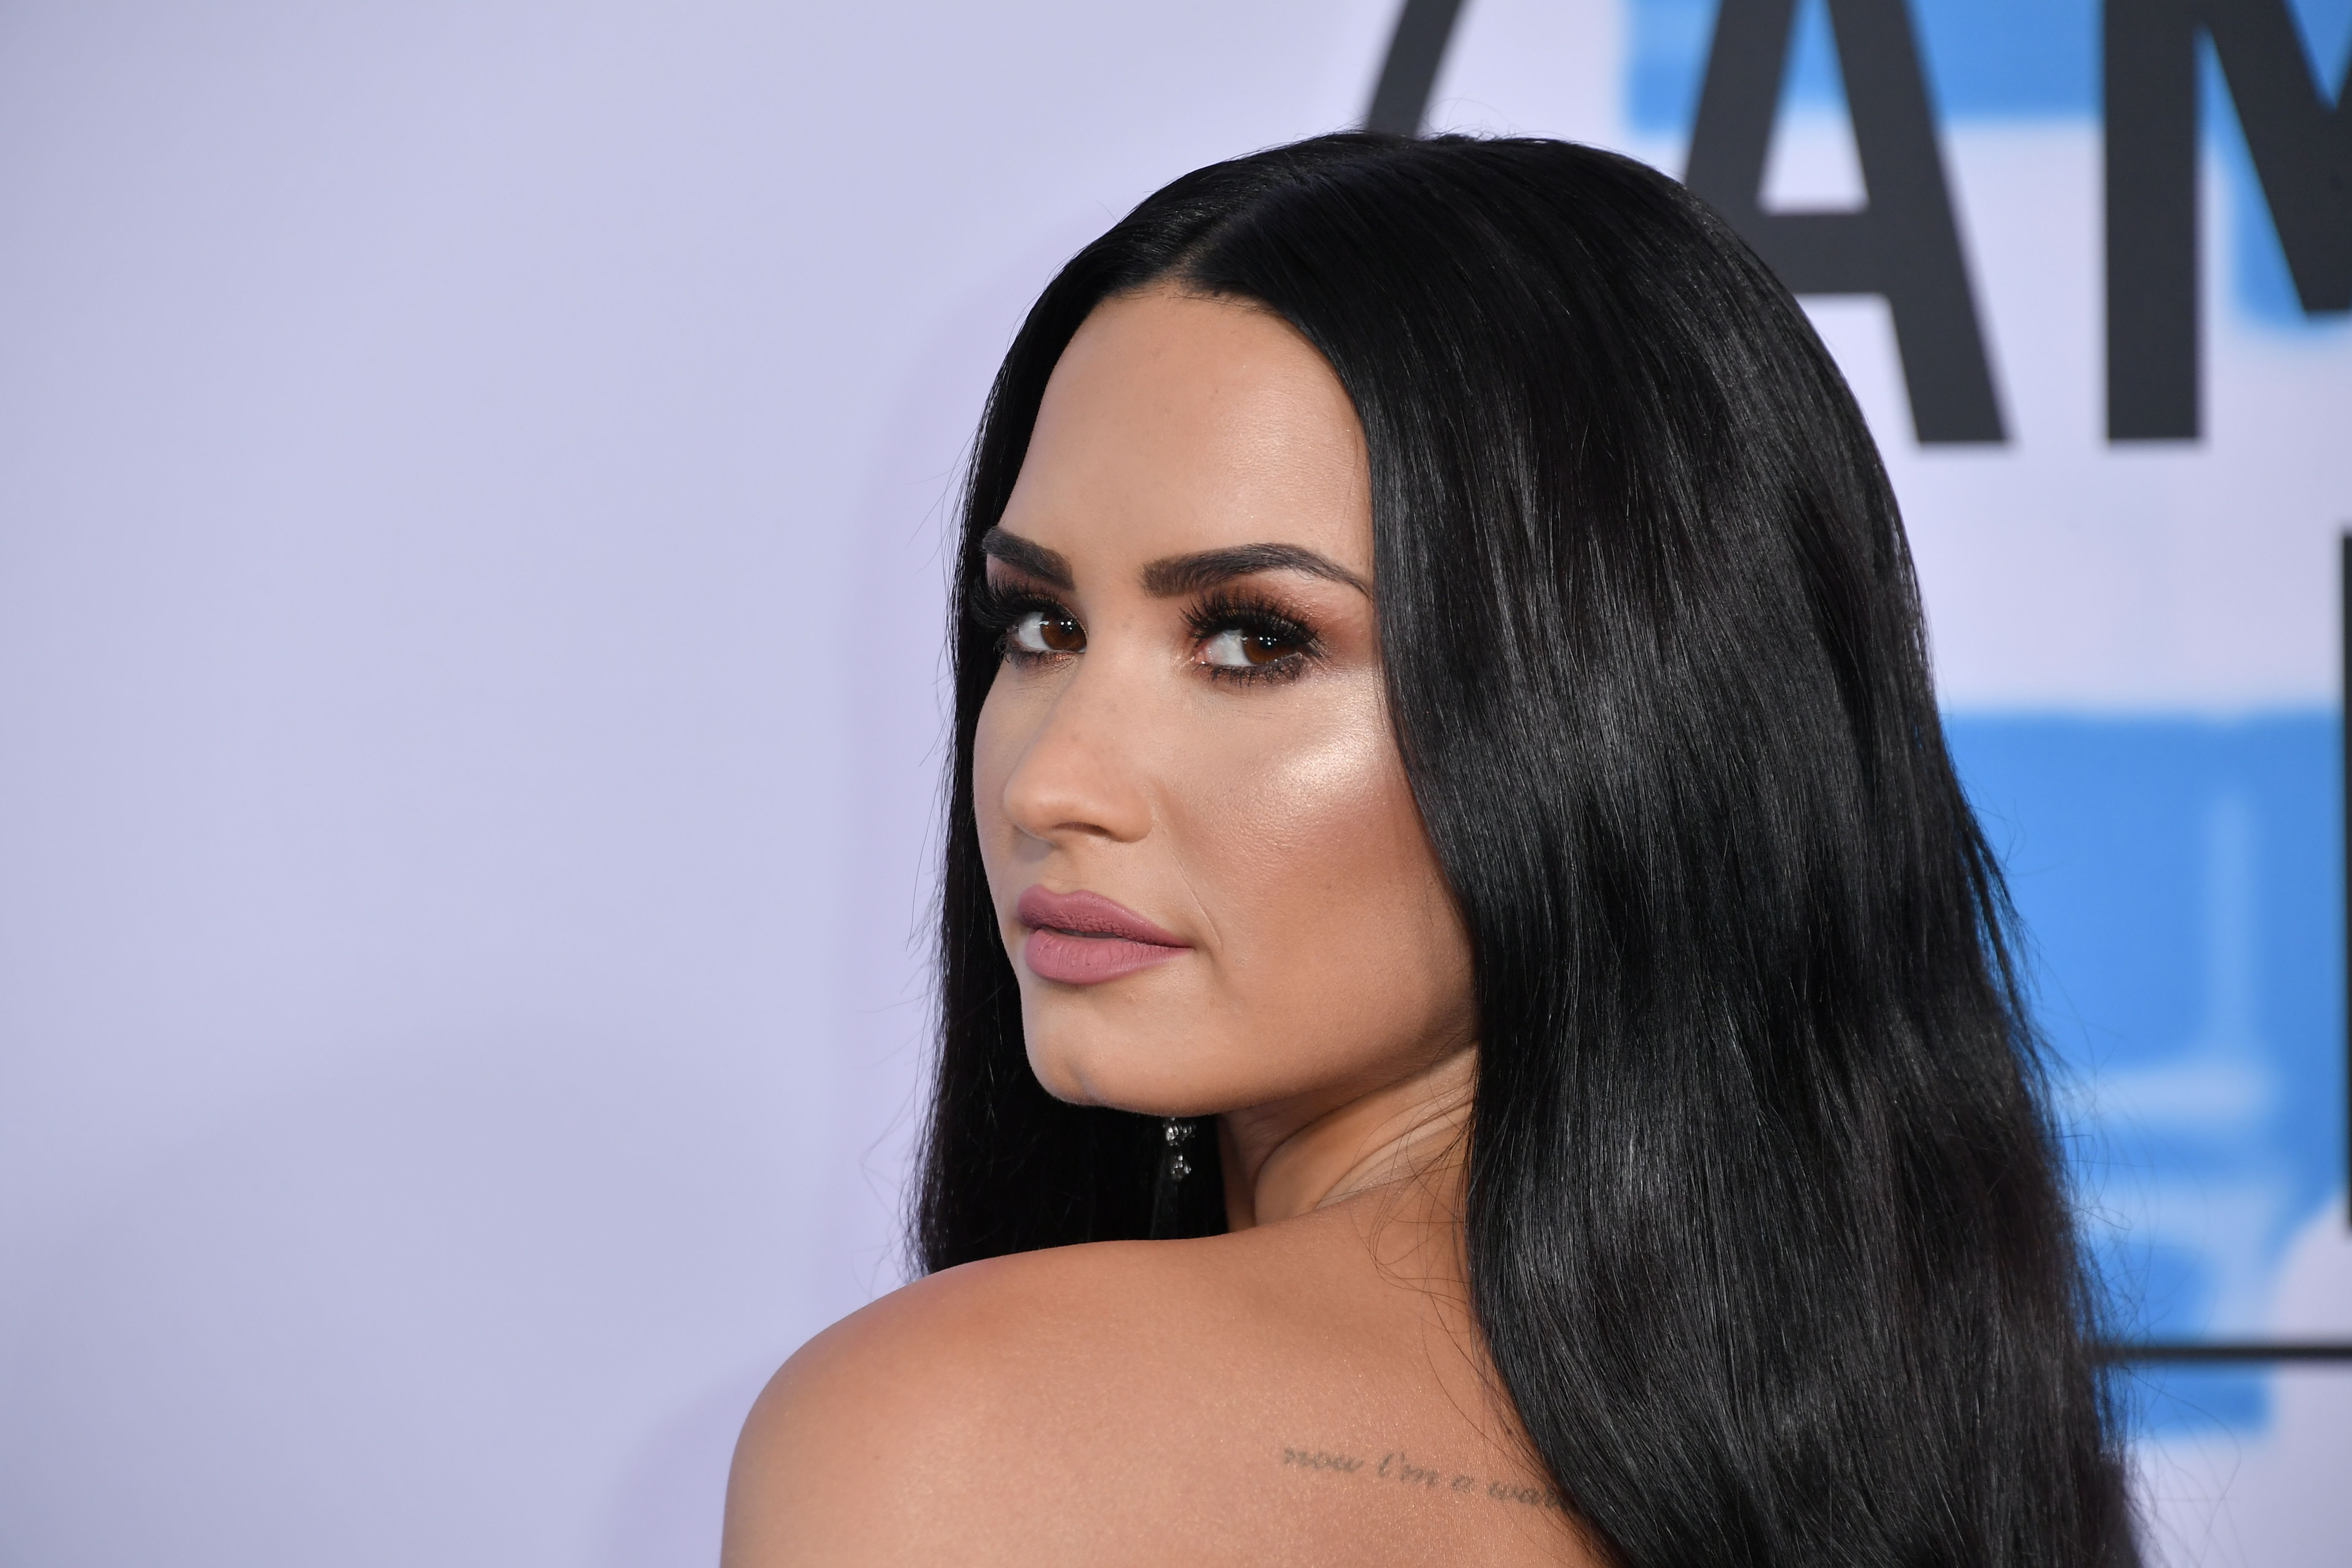 Demi Lovato at the 2017 American Music Awards  in Los Angeles | Source: Getty Images